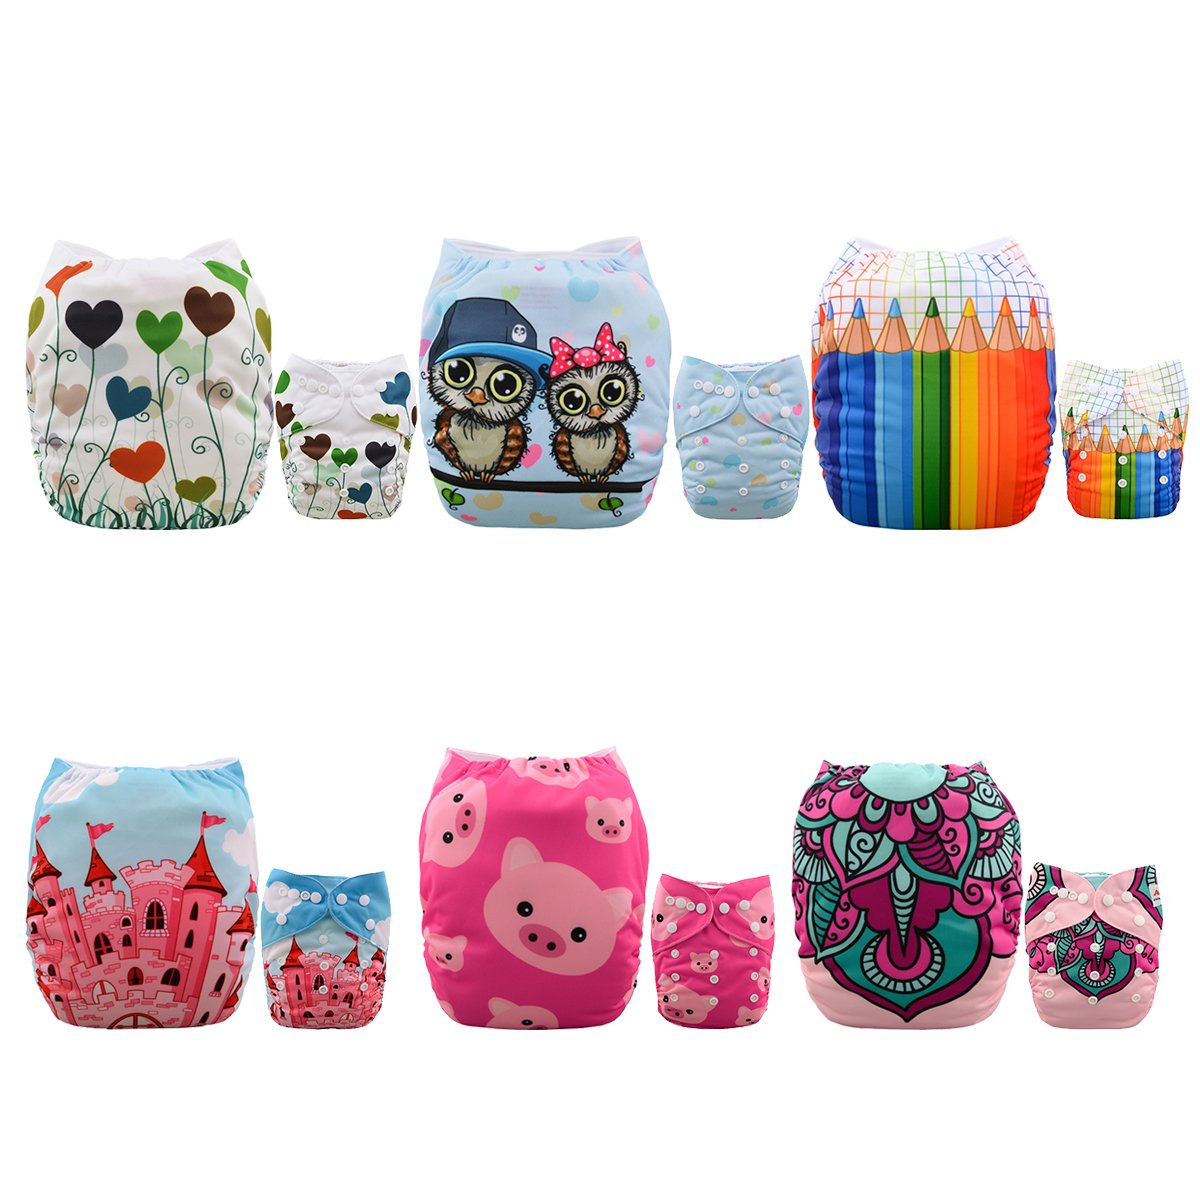 ALVABABY Baby Cloth Diapers 6 Pack with 12 Inserts Adjustable Washable and Reusable Pocket Diapers for Baby Girls 6BM88 -9561